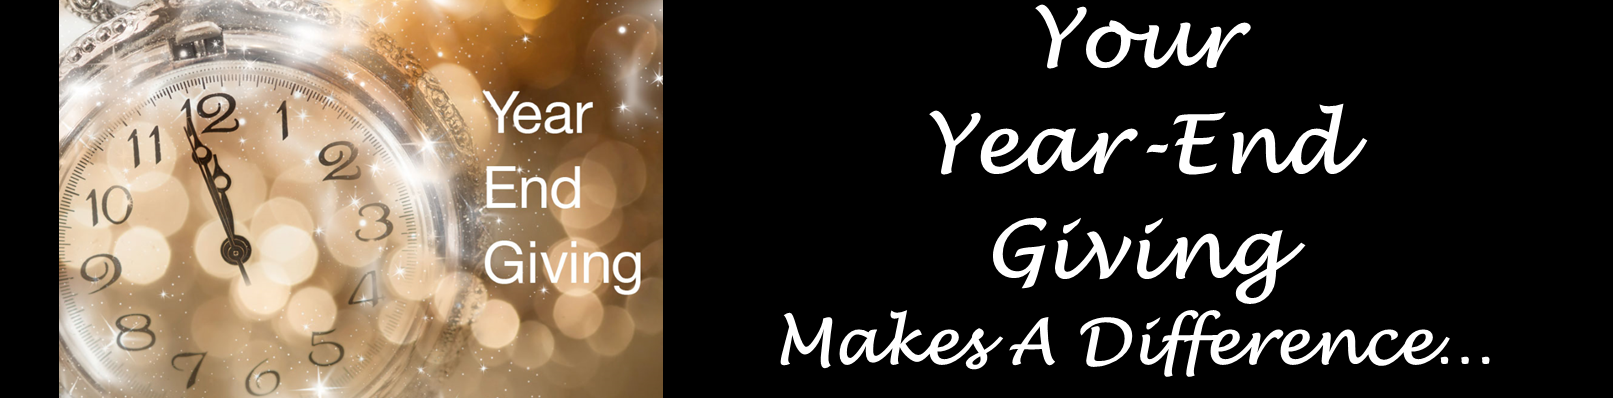 Year_End_banner_1.pnghttps://gileadministries.networkforgood.com/projects/109471-2020-year-end